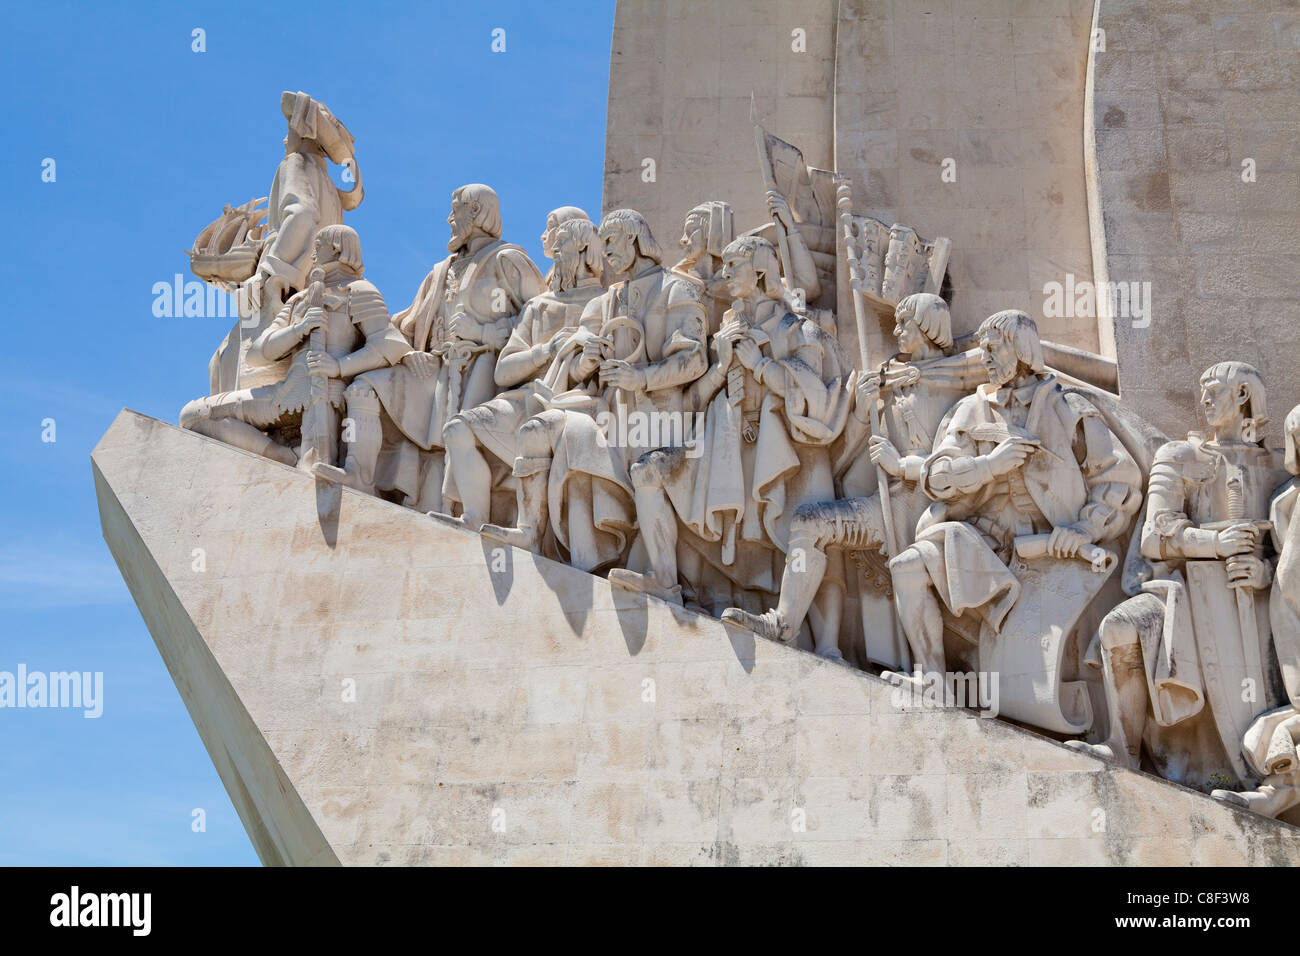 The Monument to the Discoveries, Lisbon, Portugal - Stock Image